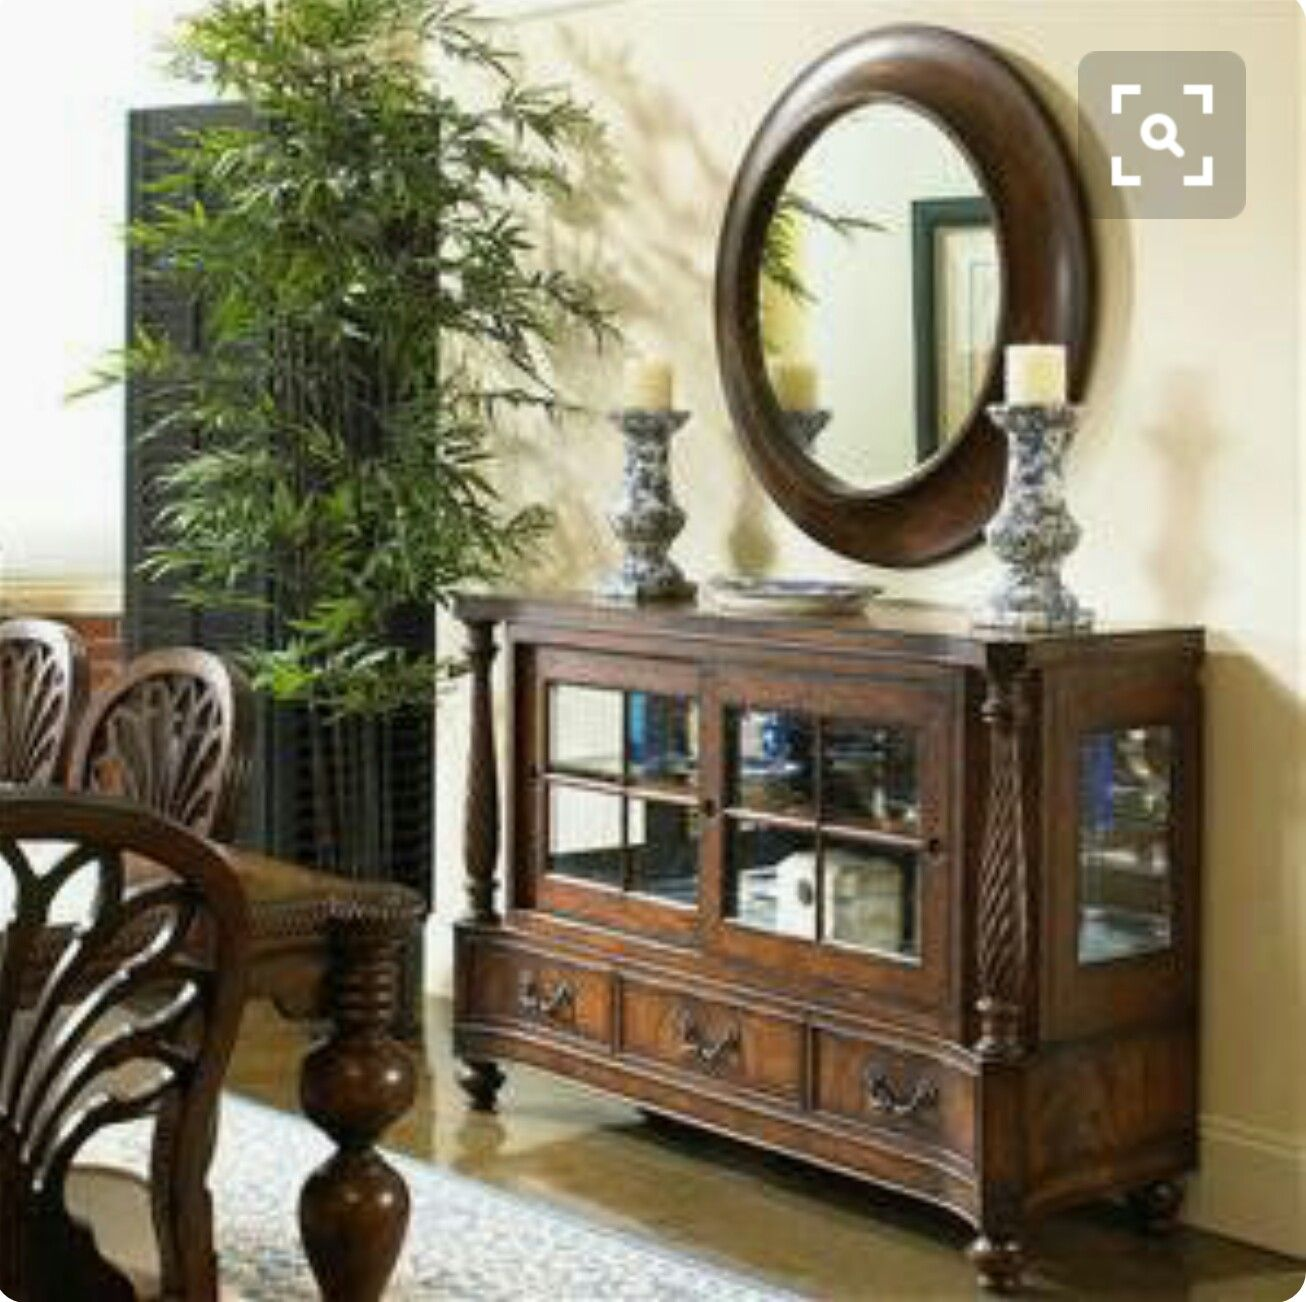 West Indies Dining Room Furniture: Pin By K R On Home Design Idea In 2019